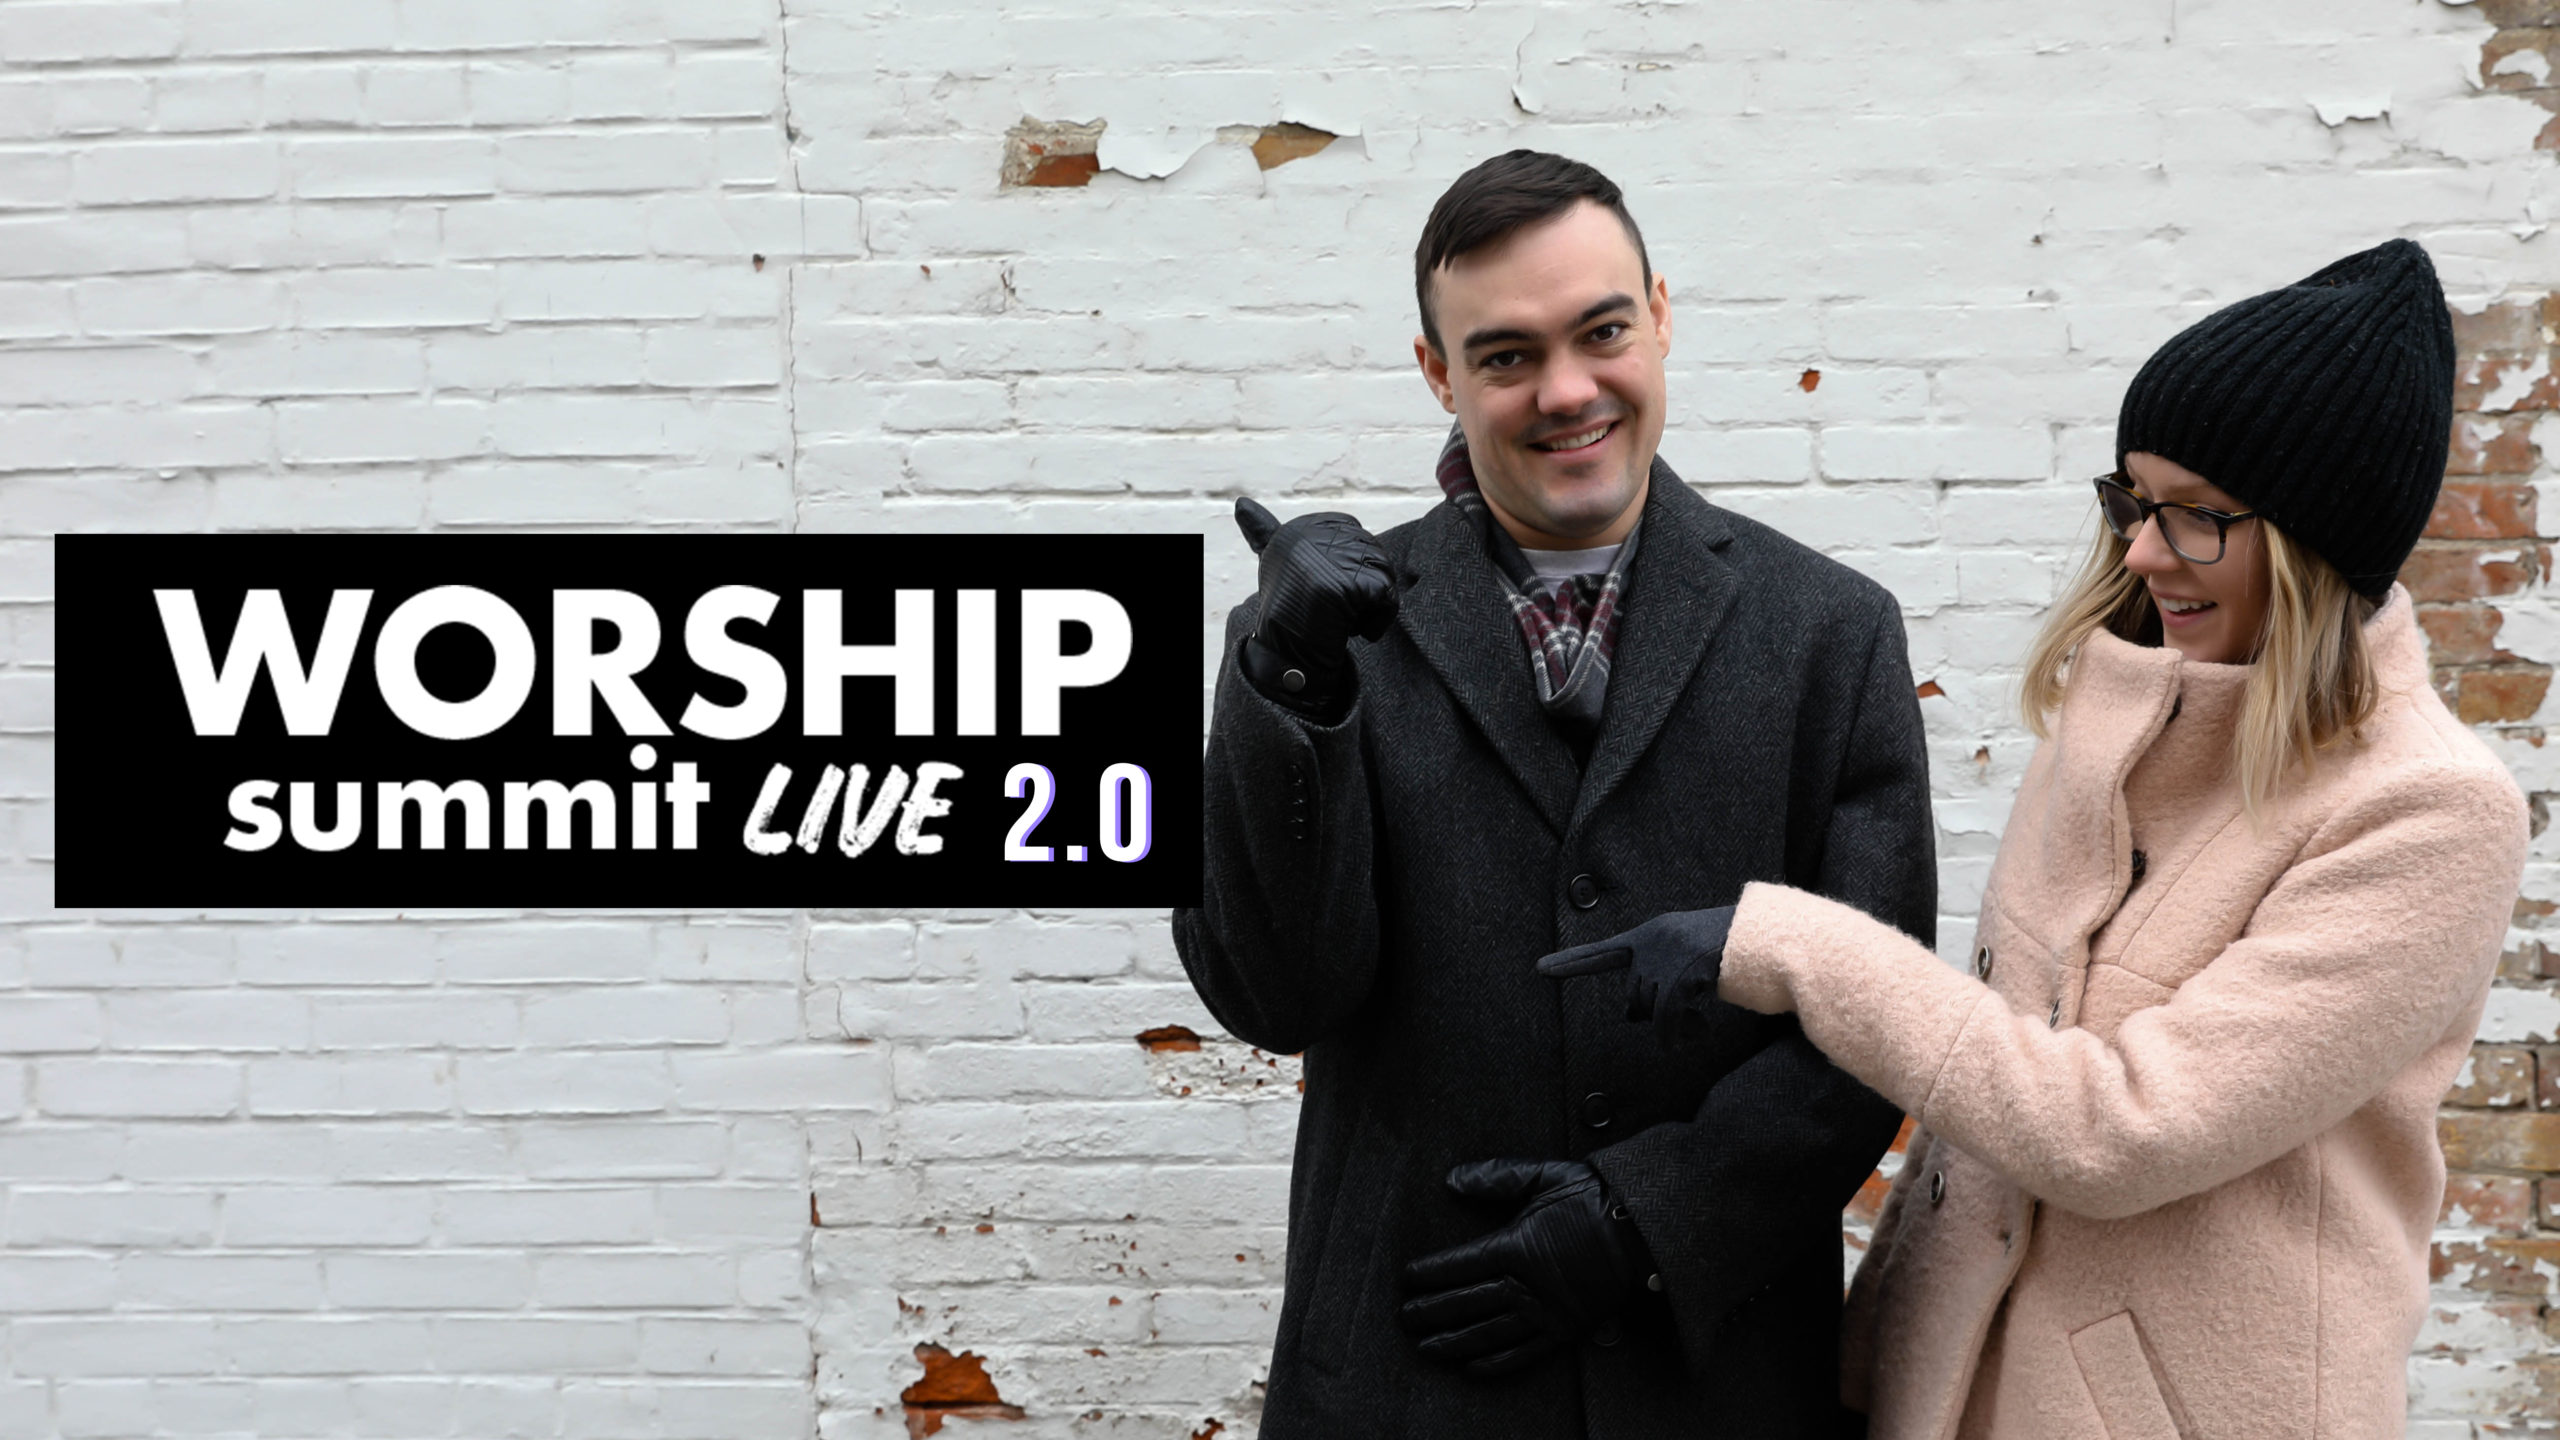 StreamGeeks to Host Online Worship Summit on Thursday with Live Performances, Expert Speakers